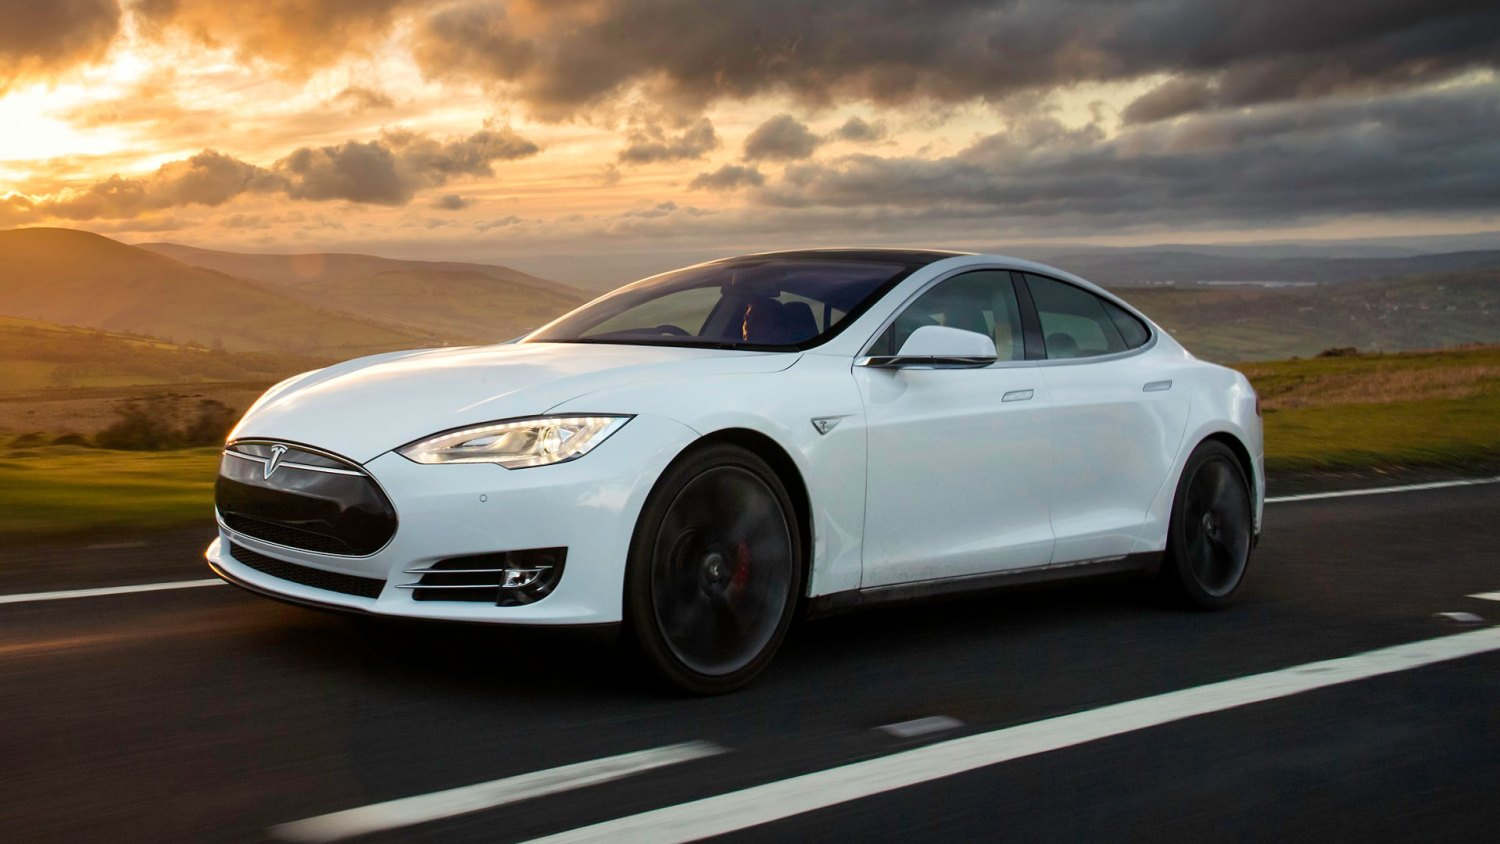 Tesla Model S - greatest cars of the decade